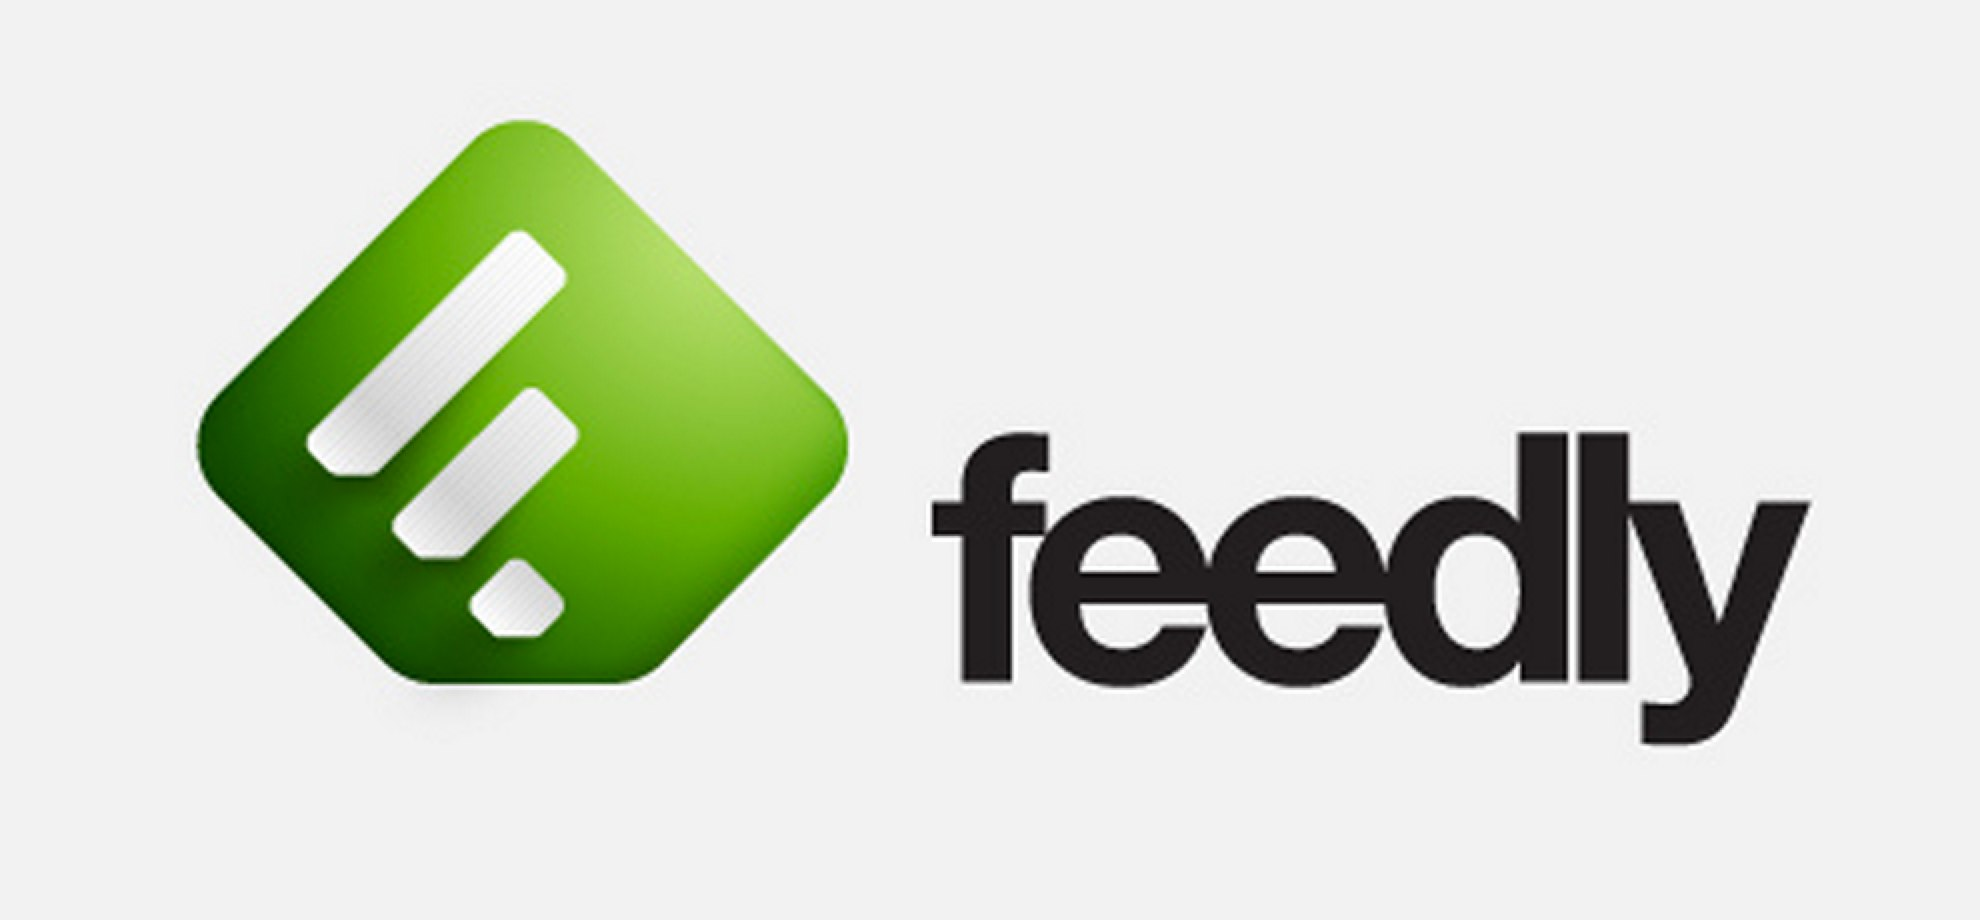 Feedly Png - Google Reader Who? Feedly Became Top News App On iPhone, iPad ...